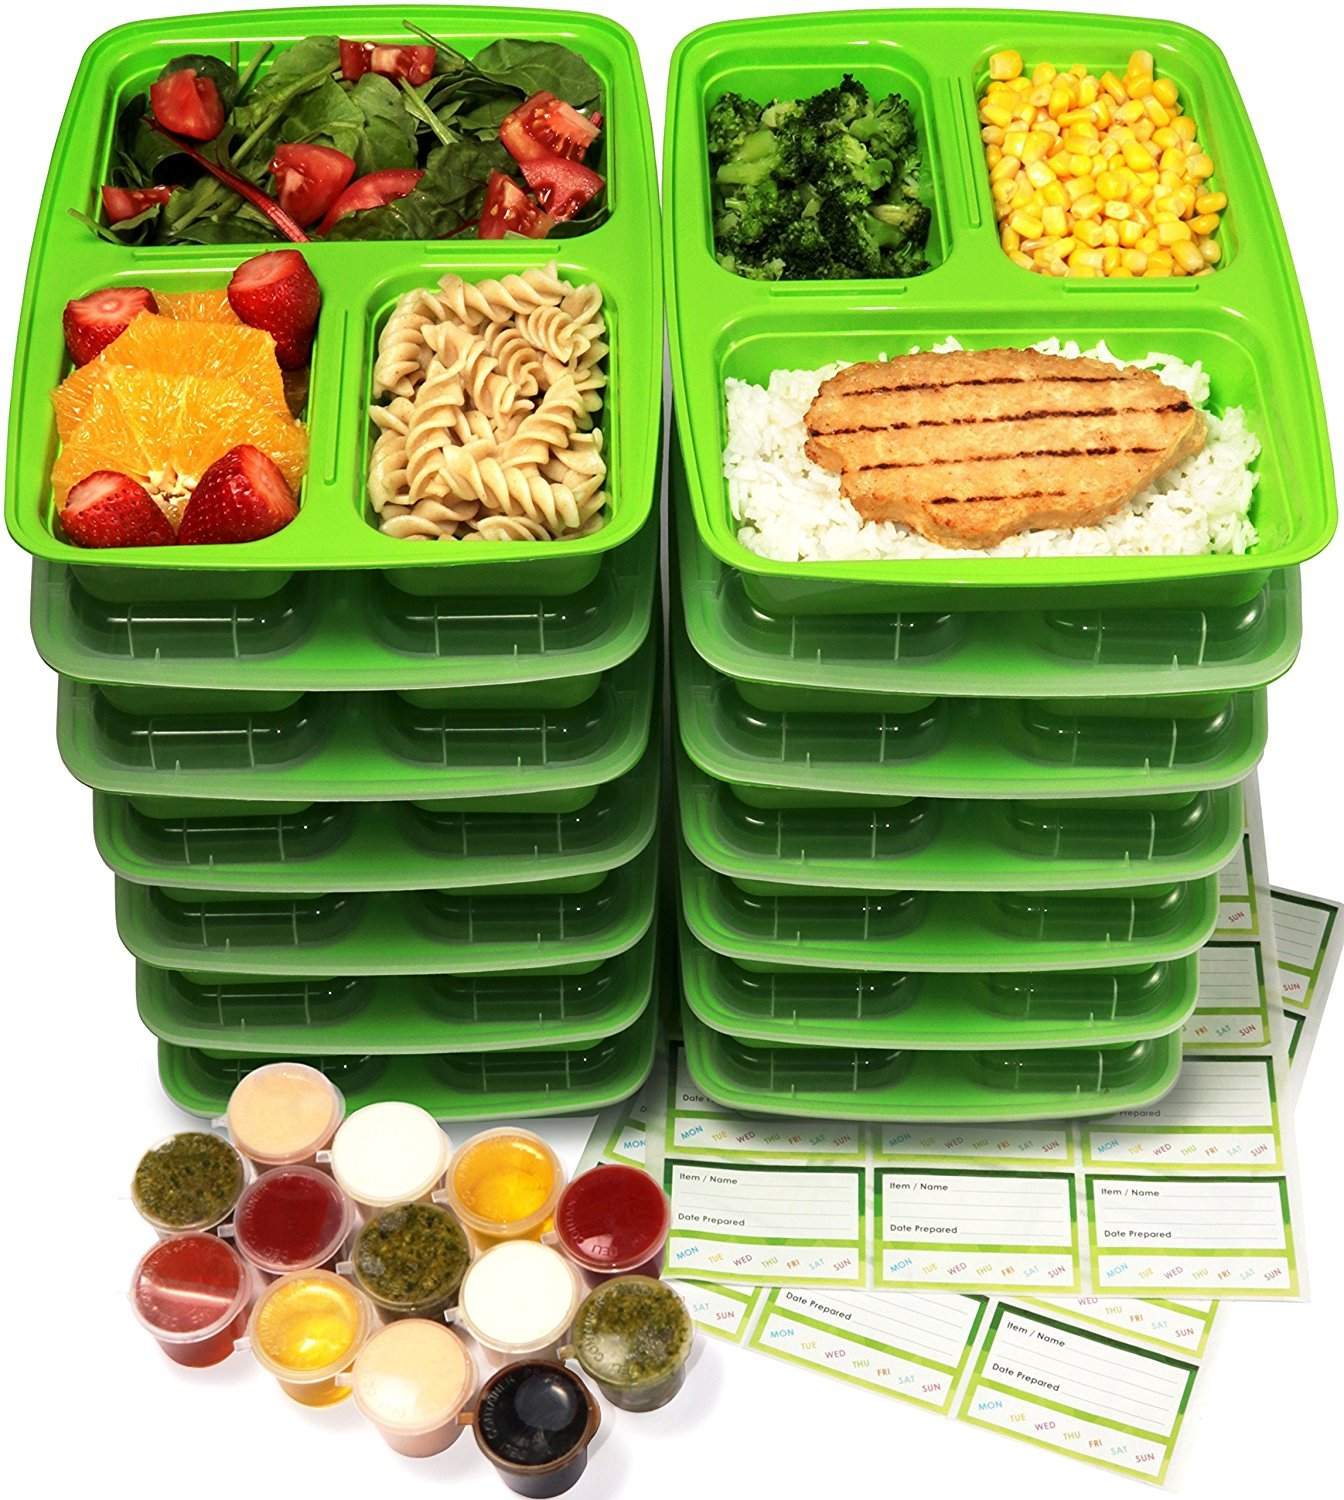 Meal Prep Containers, KICHEIF Food Prep Containers, Food Storage Containers with Lids, Reusable Freezer Containers - BPA Free, Stackable/Microwave/Dishwasher/Freezer Safe